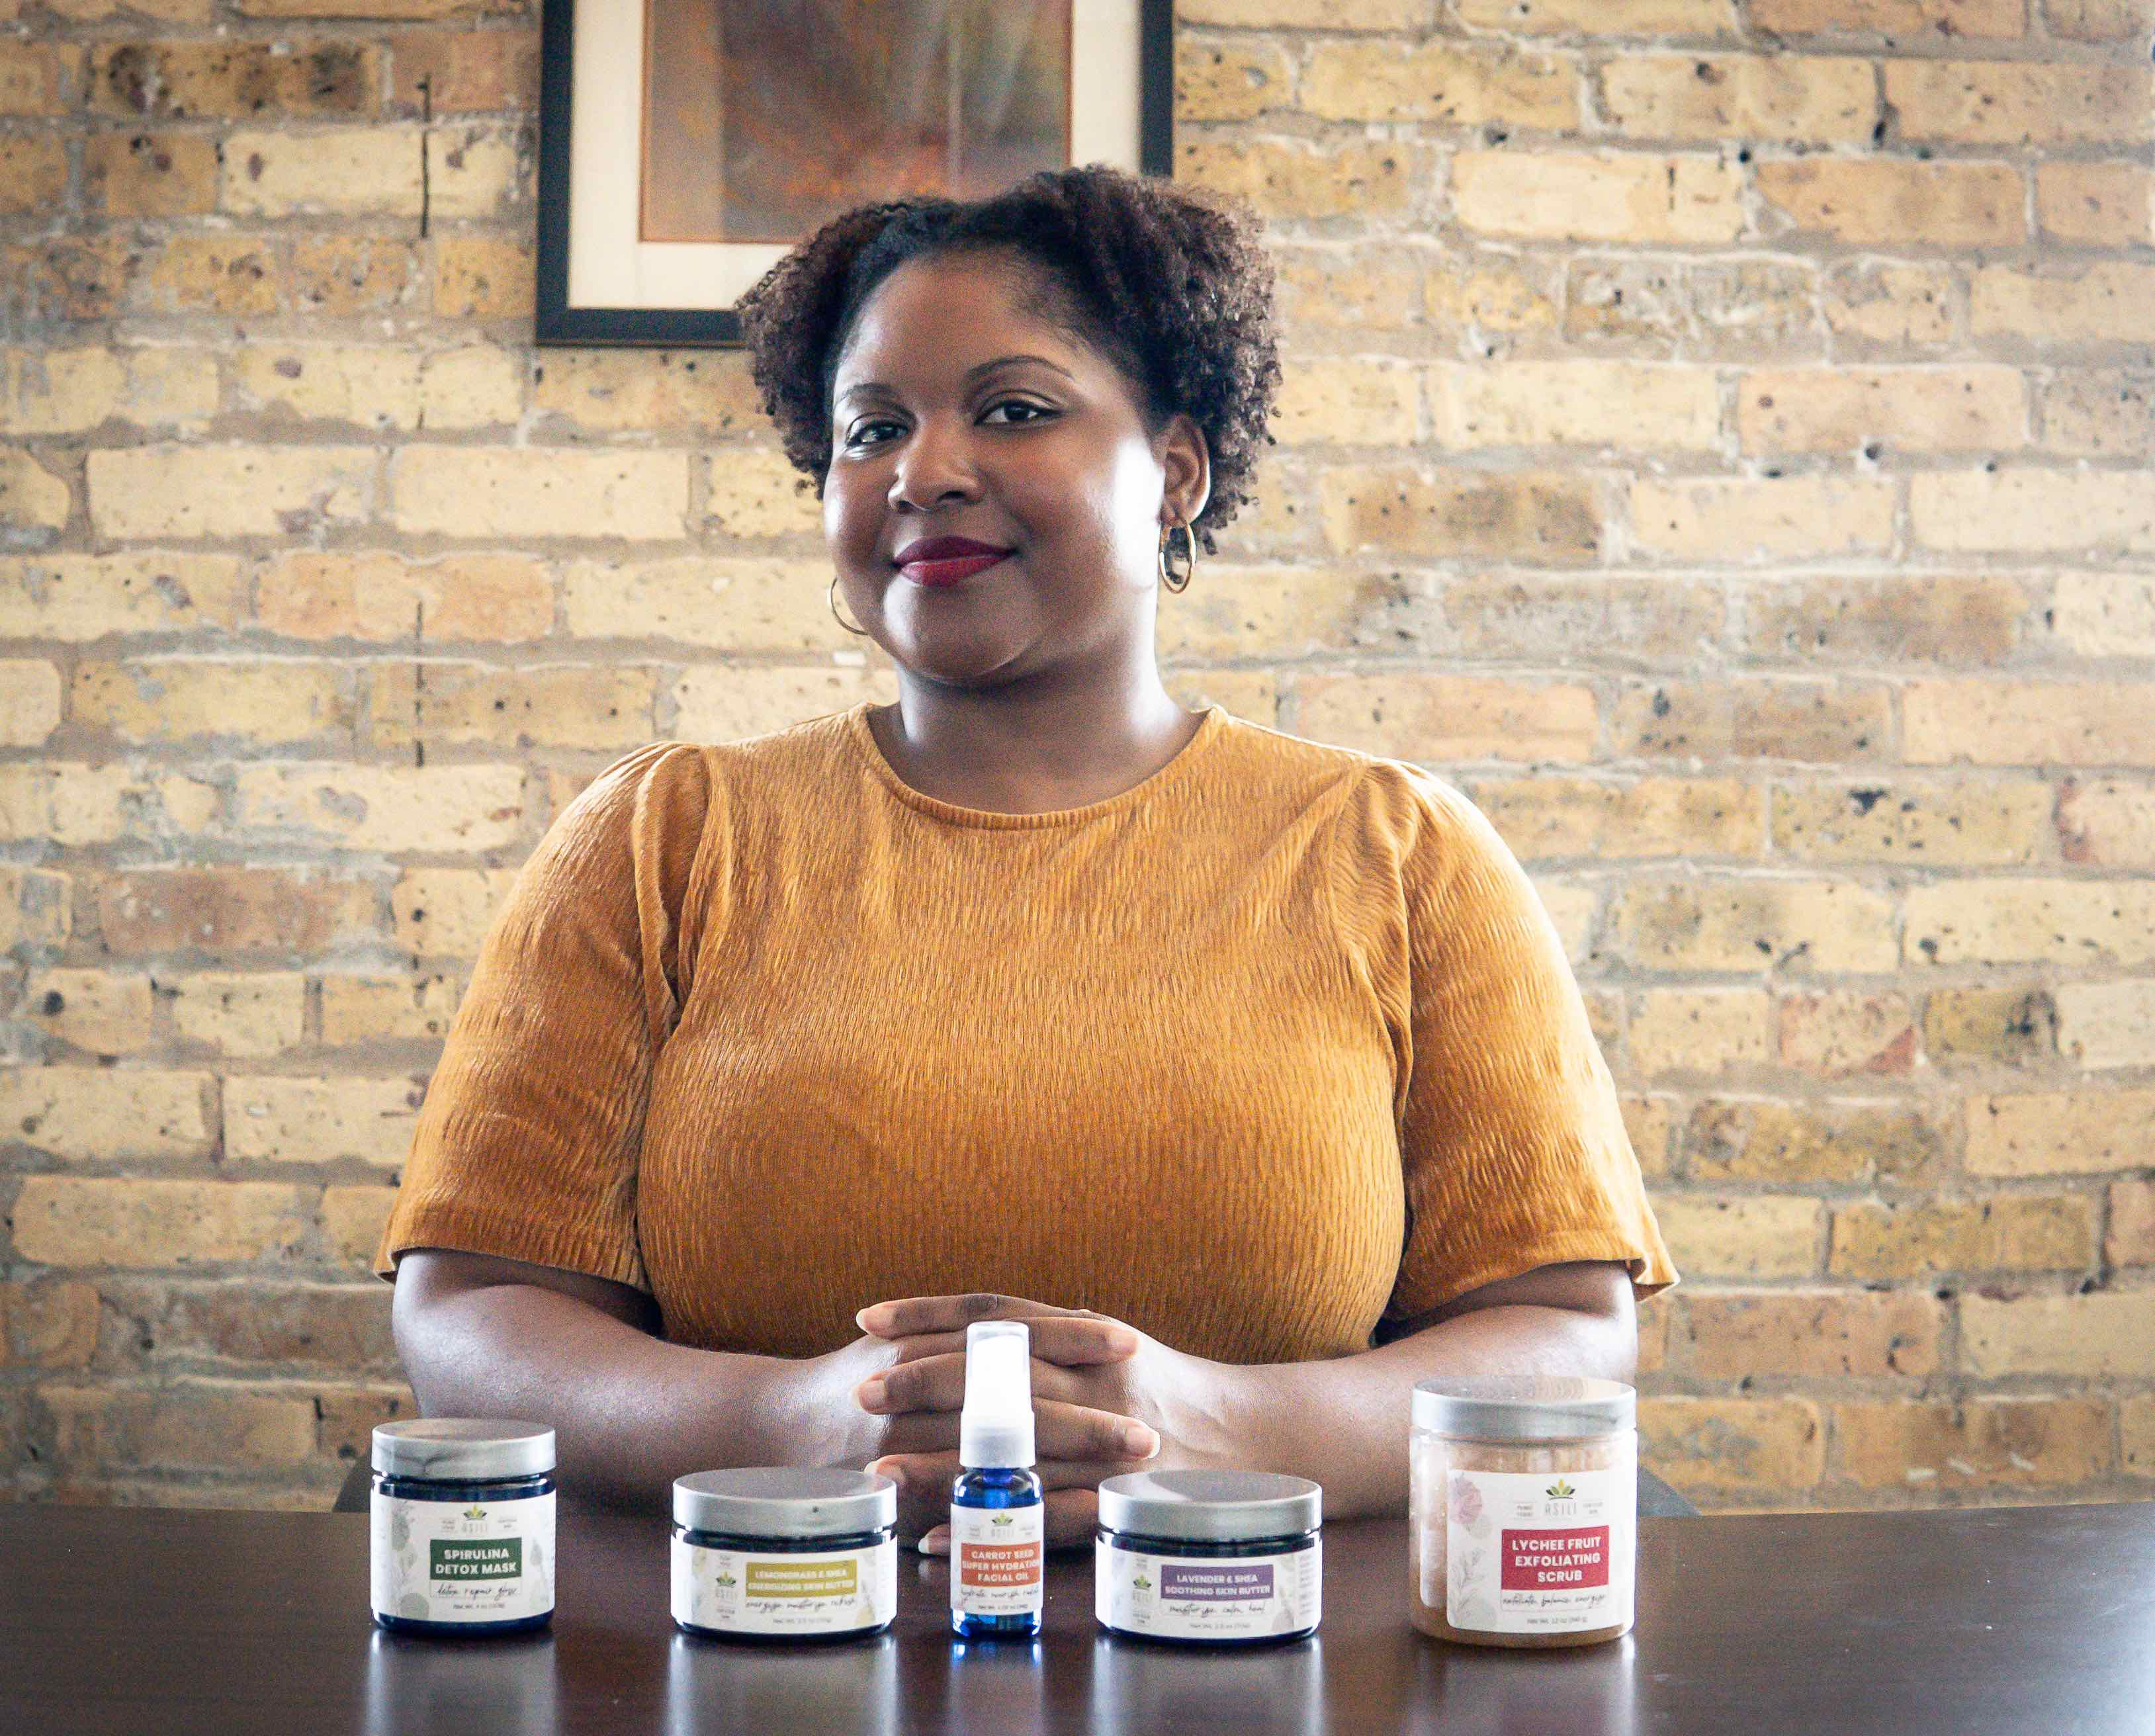 Trenise Watson next to her Asili Naturals creations